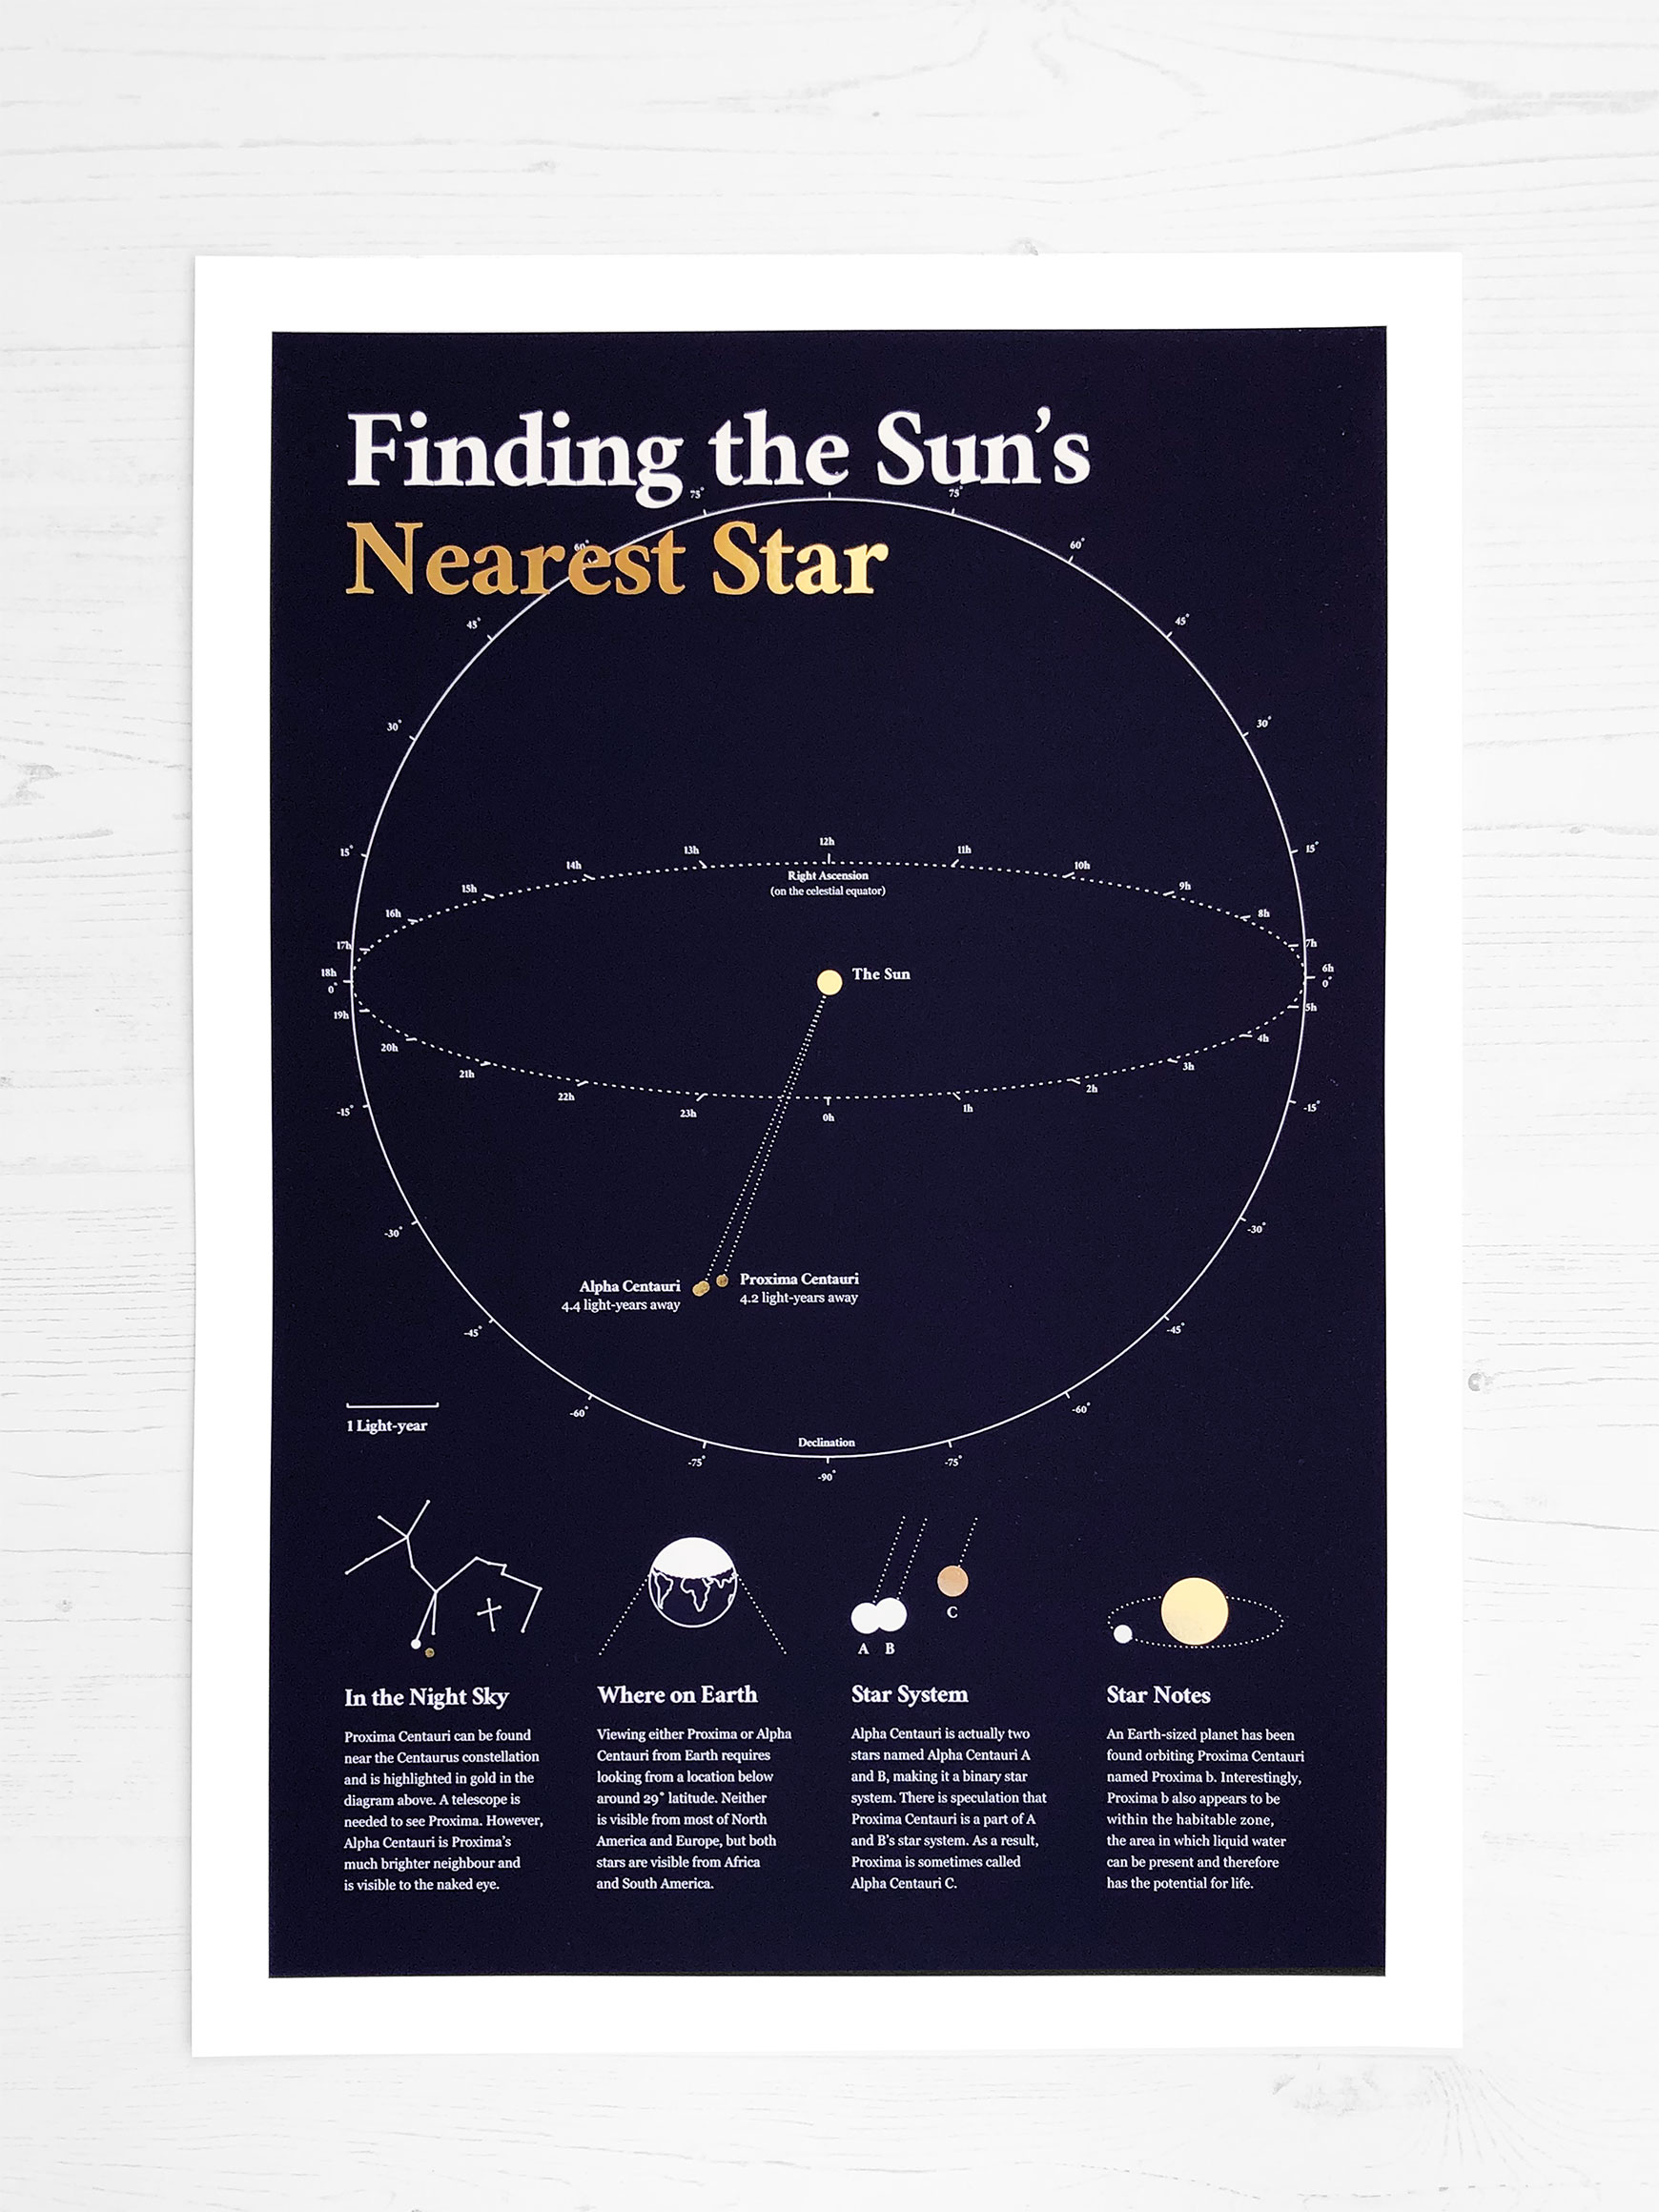 Astronomy map of the nearest star to our sun